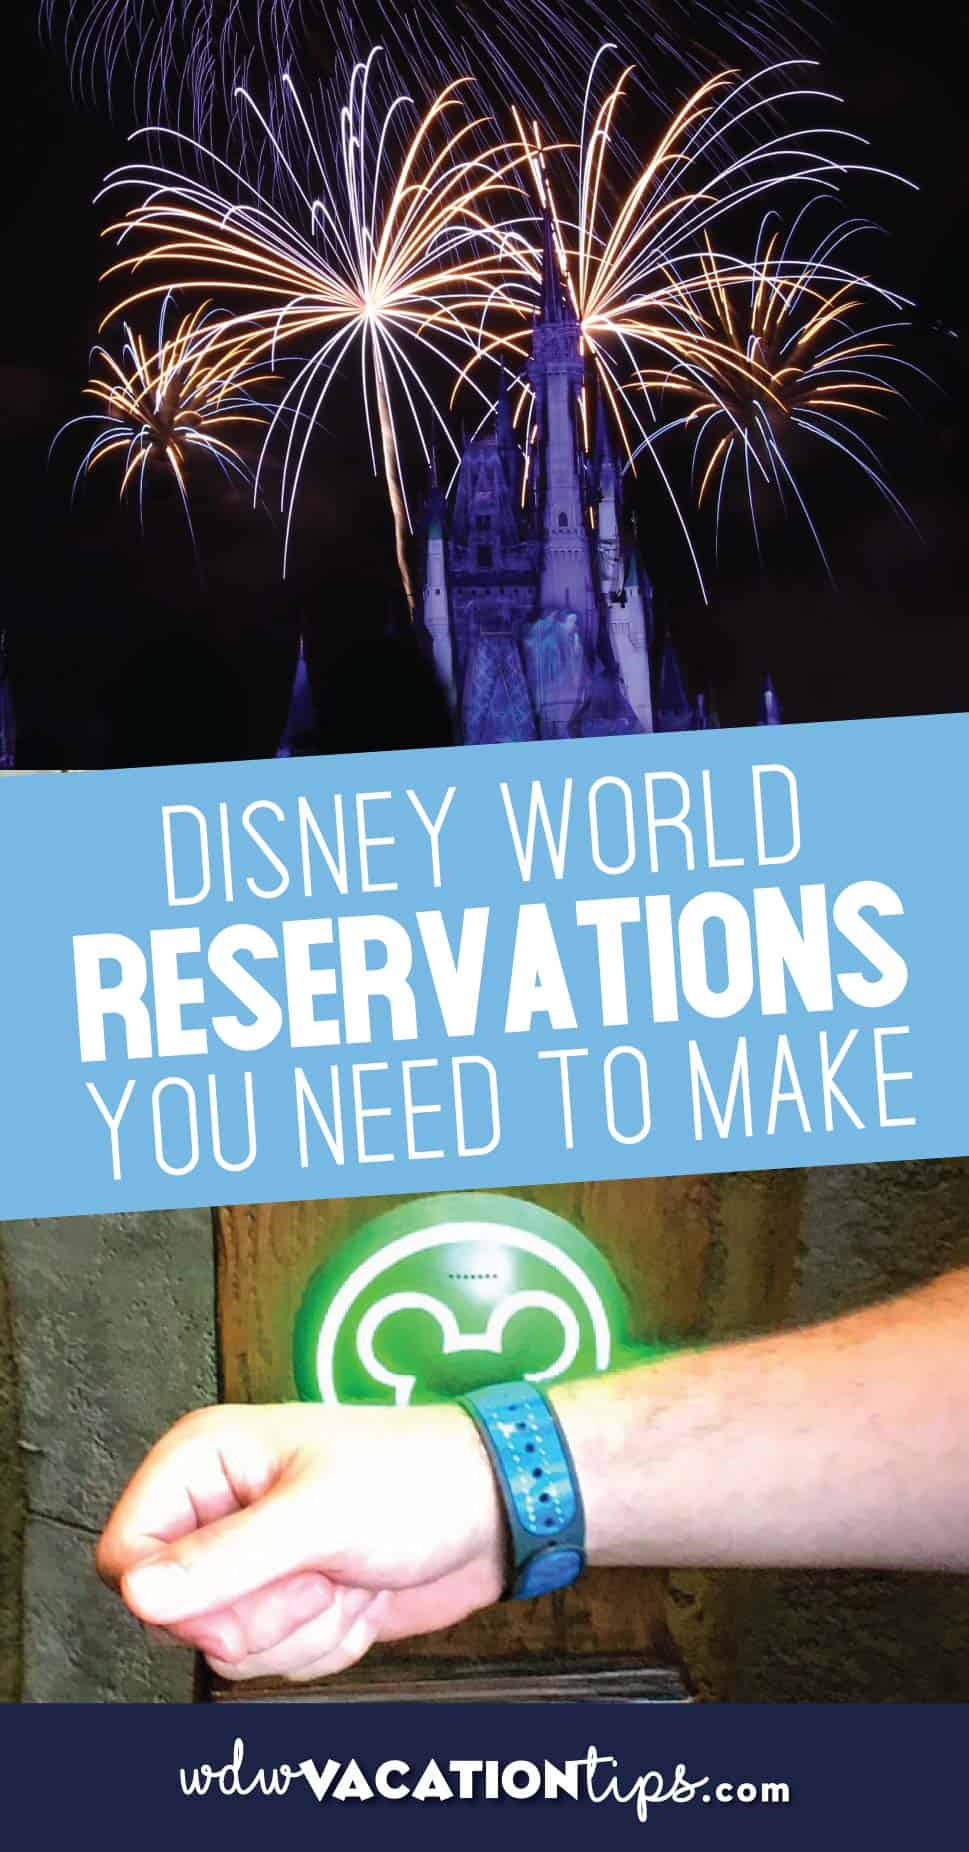 Disney World Reservations to make